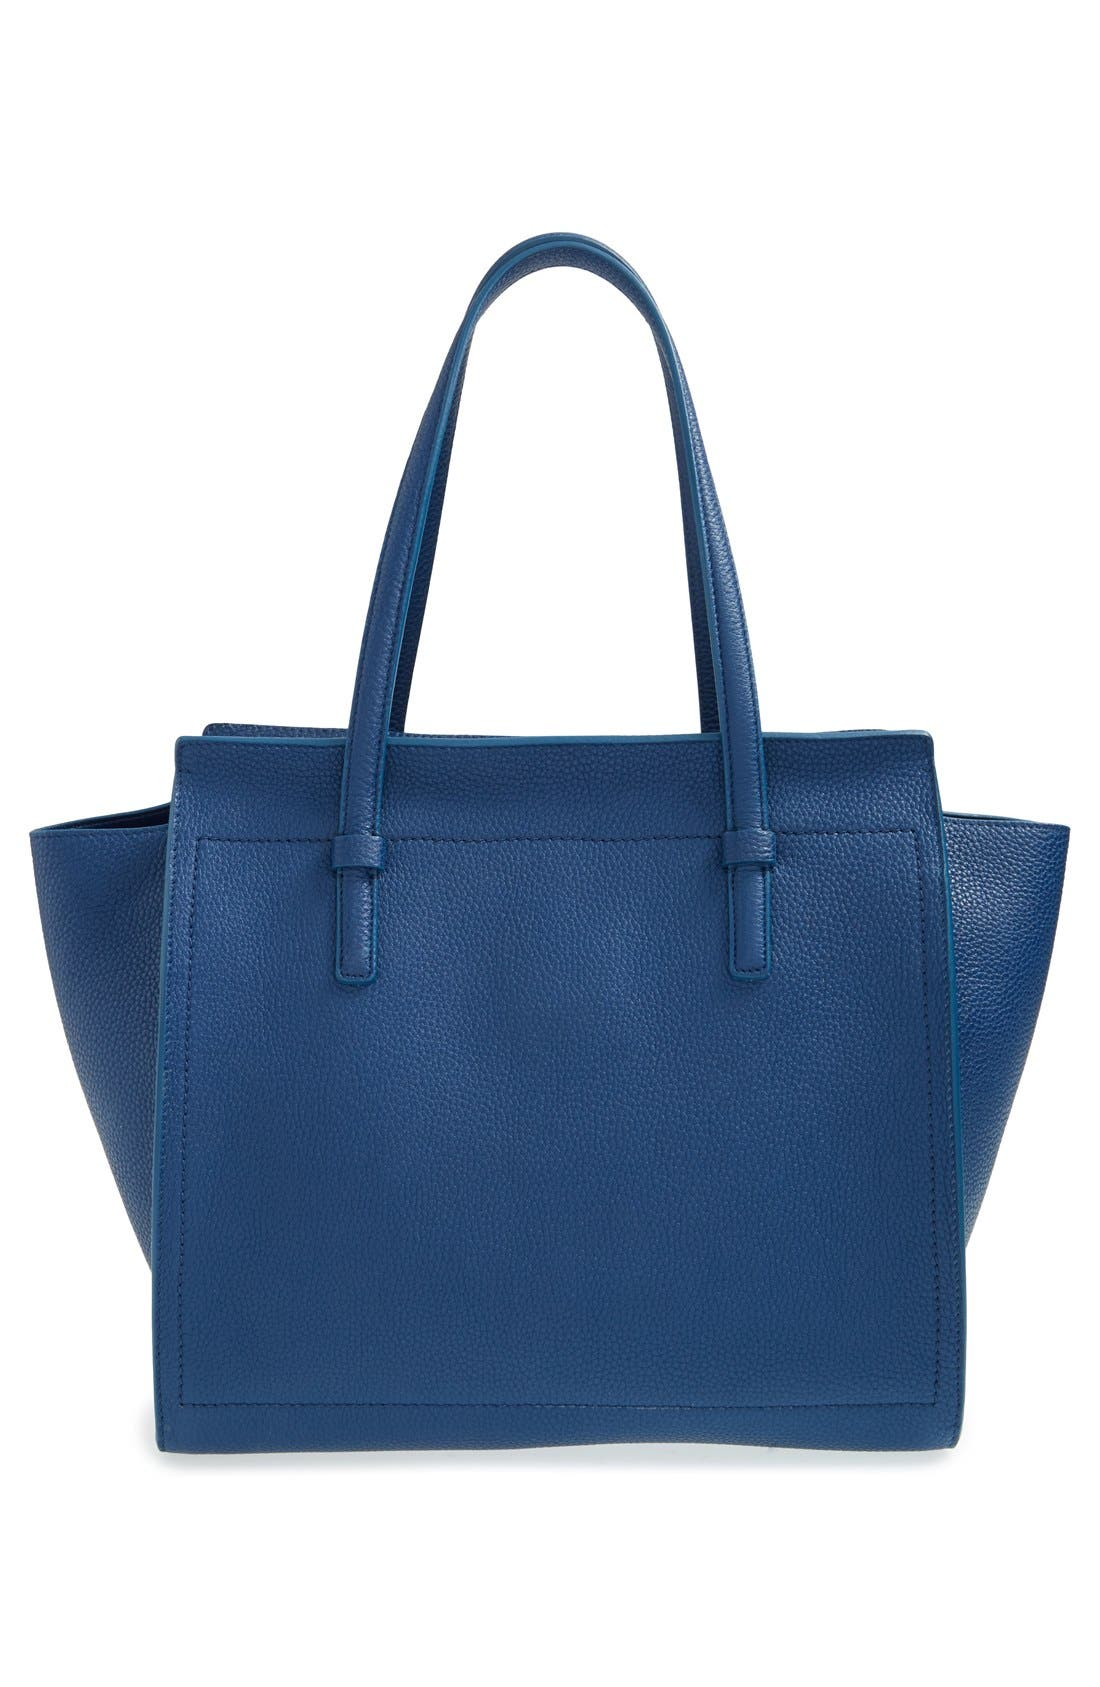 'Small Amy' Calfskin Leather Tote,                             Alternate thumbnail 2, color,                             400